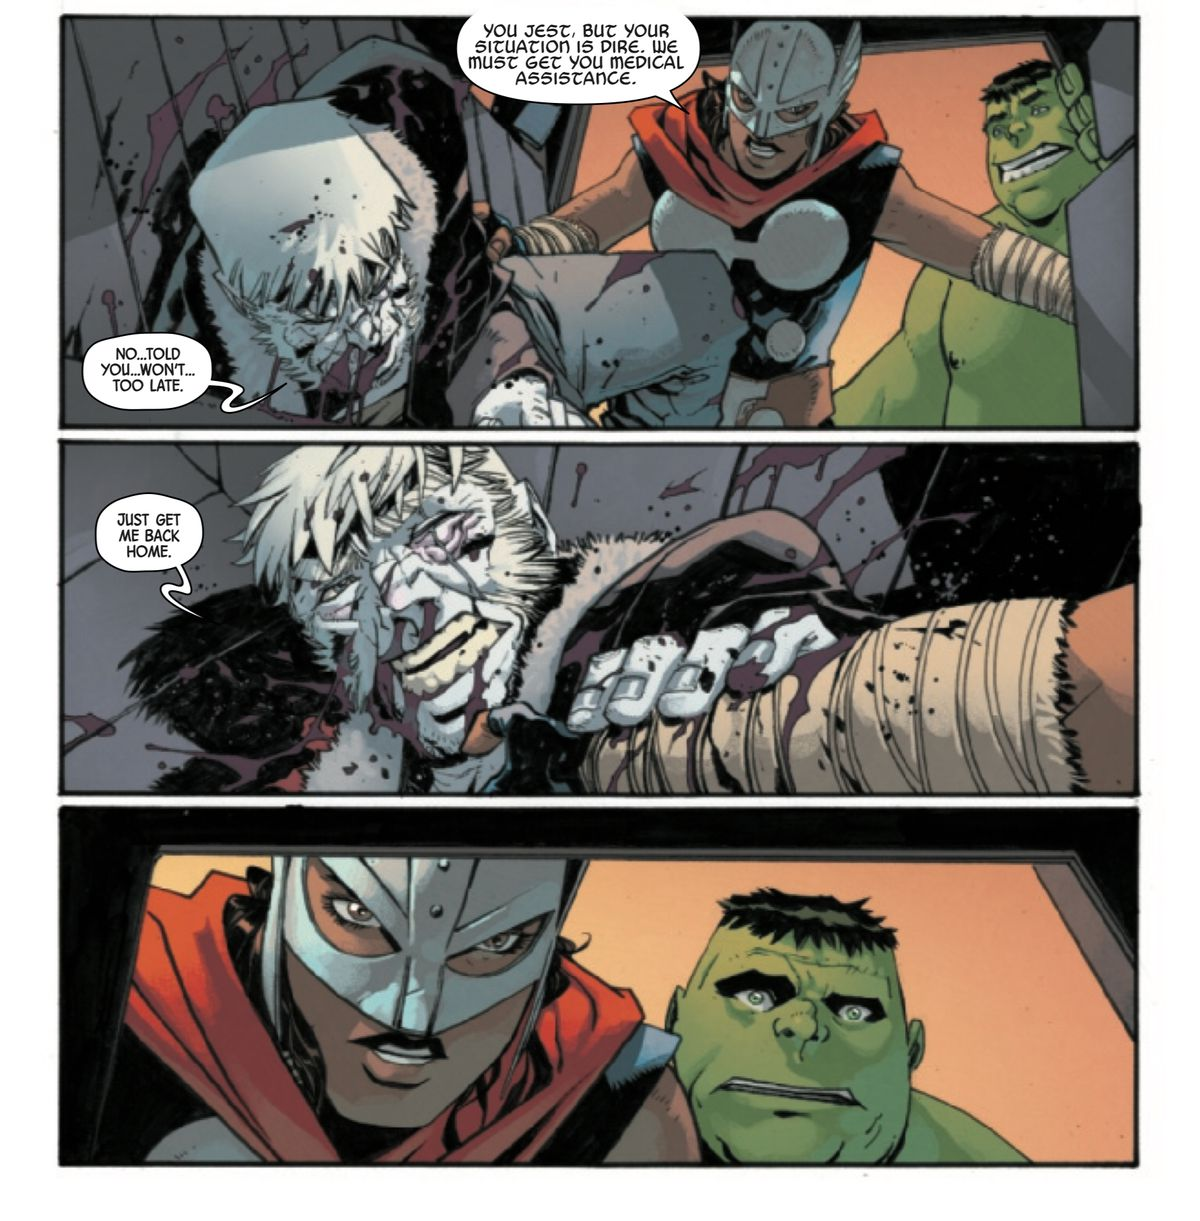 Realizing that he is dying, Logan asks Dani Cage and Bruce the hulk-kid to take him home, in Old Man Logan #12, Marvel Comics (2019).